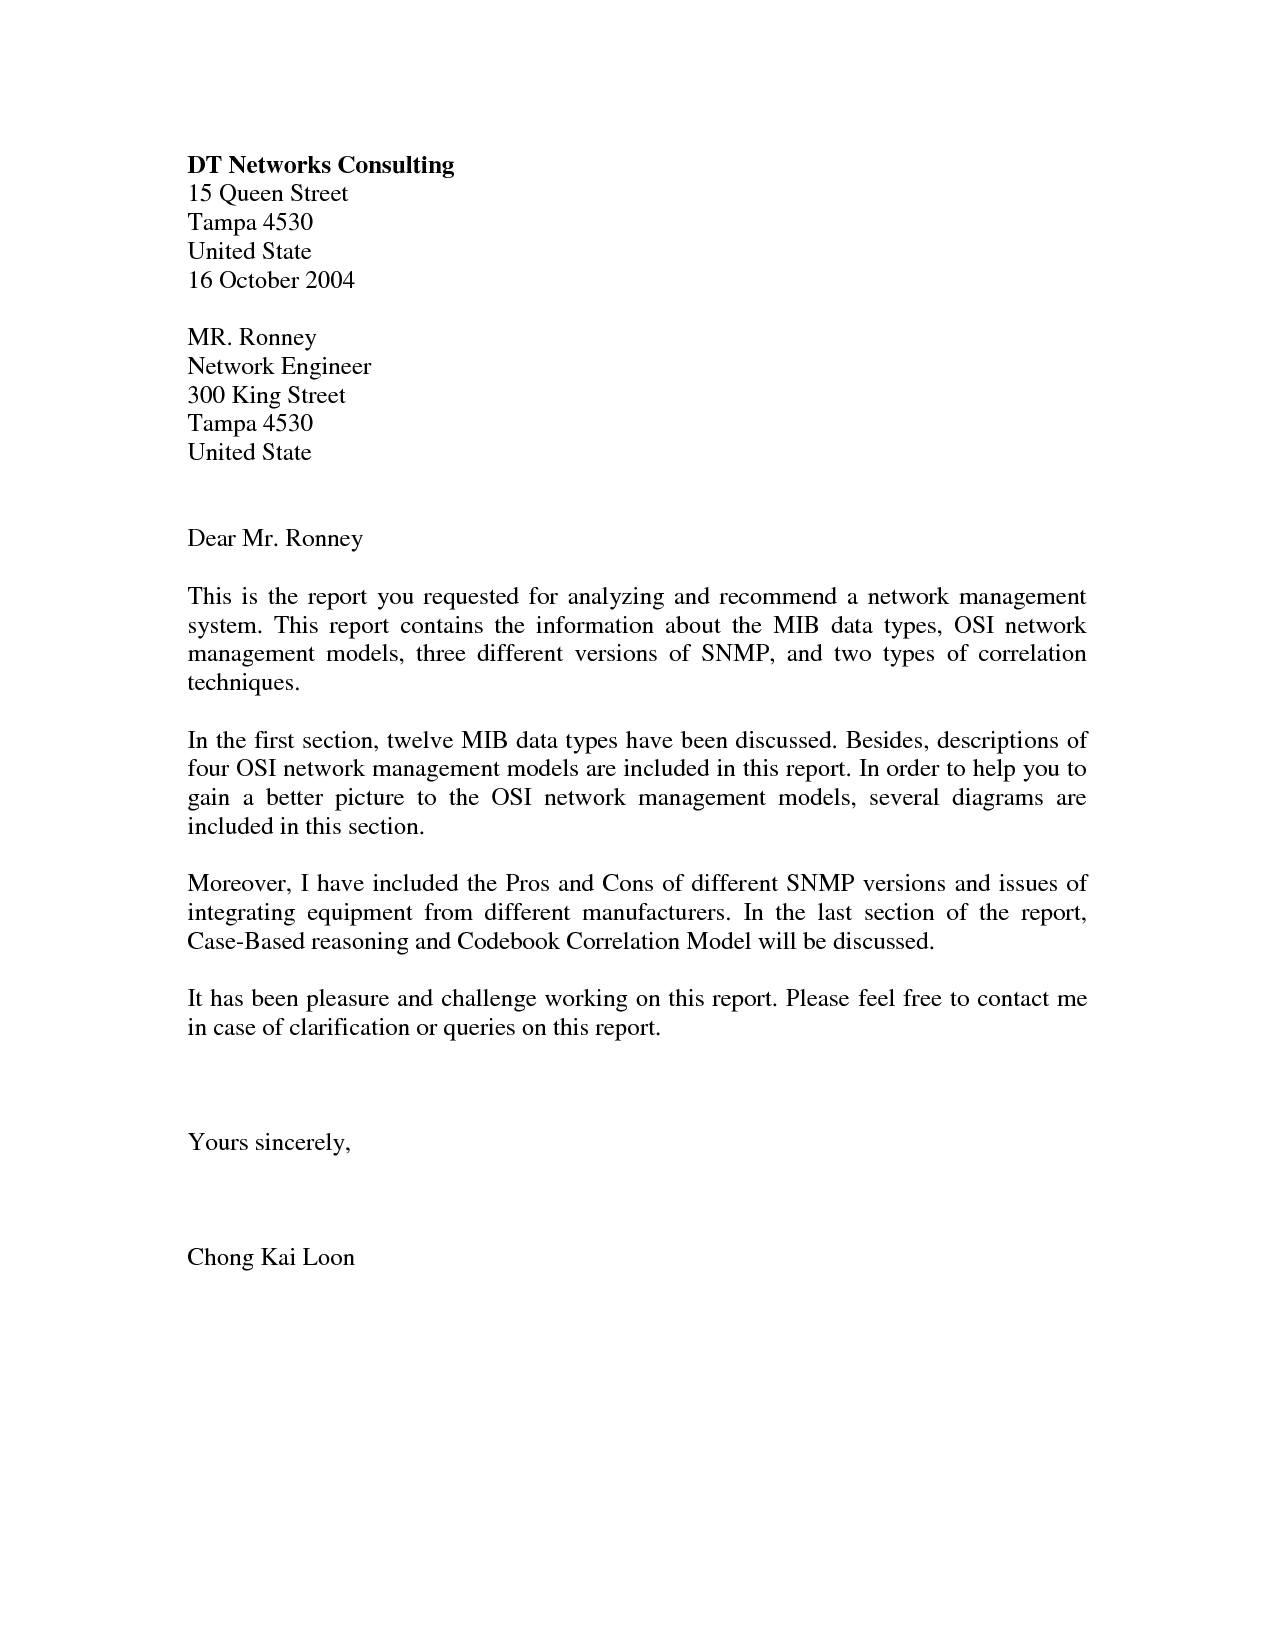 Letter Consulting Customersimple Cover Letter Application